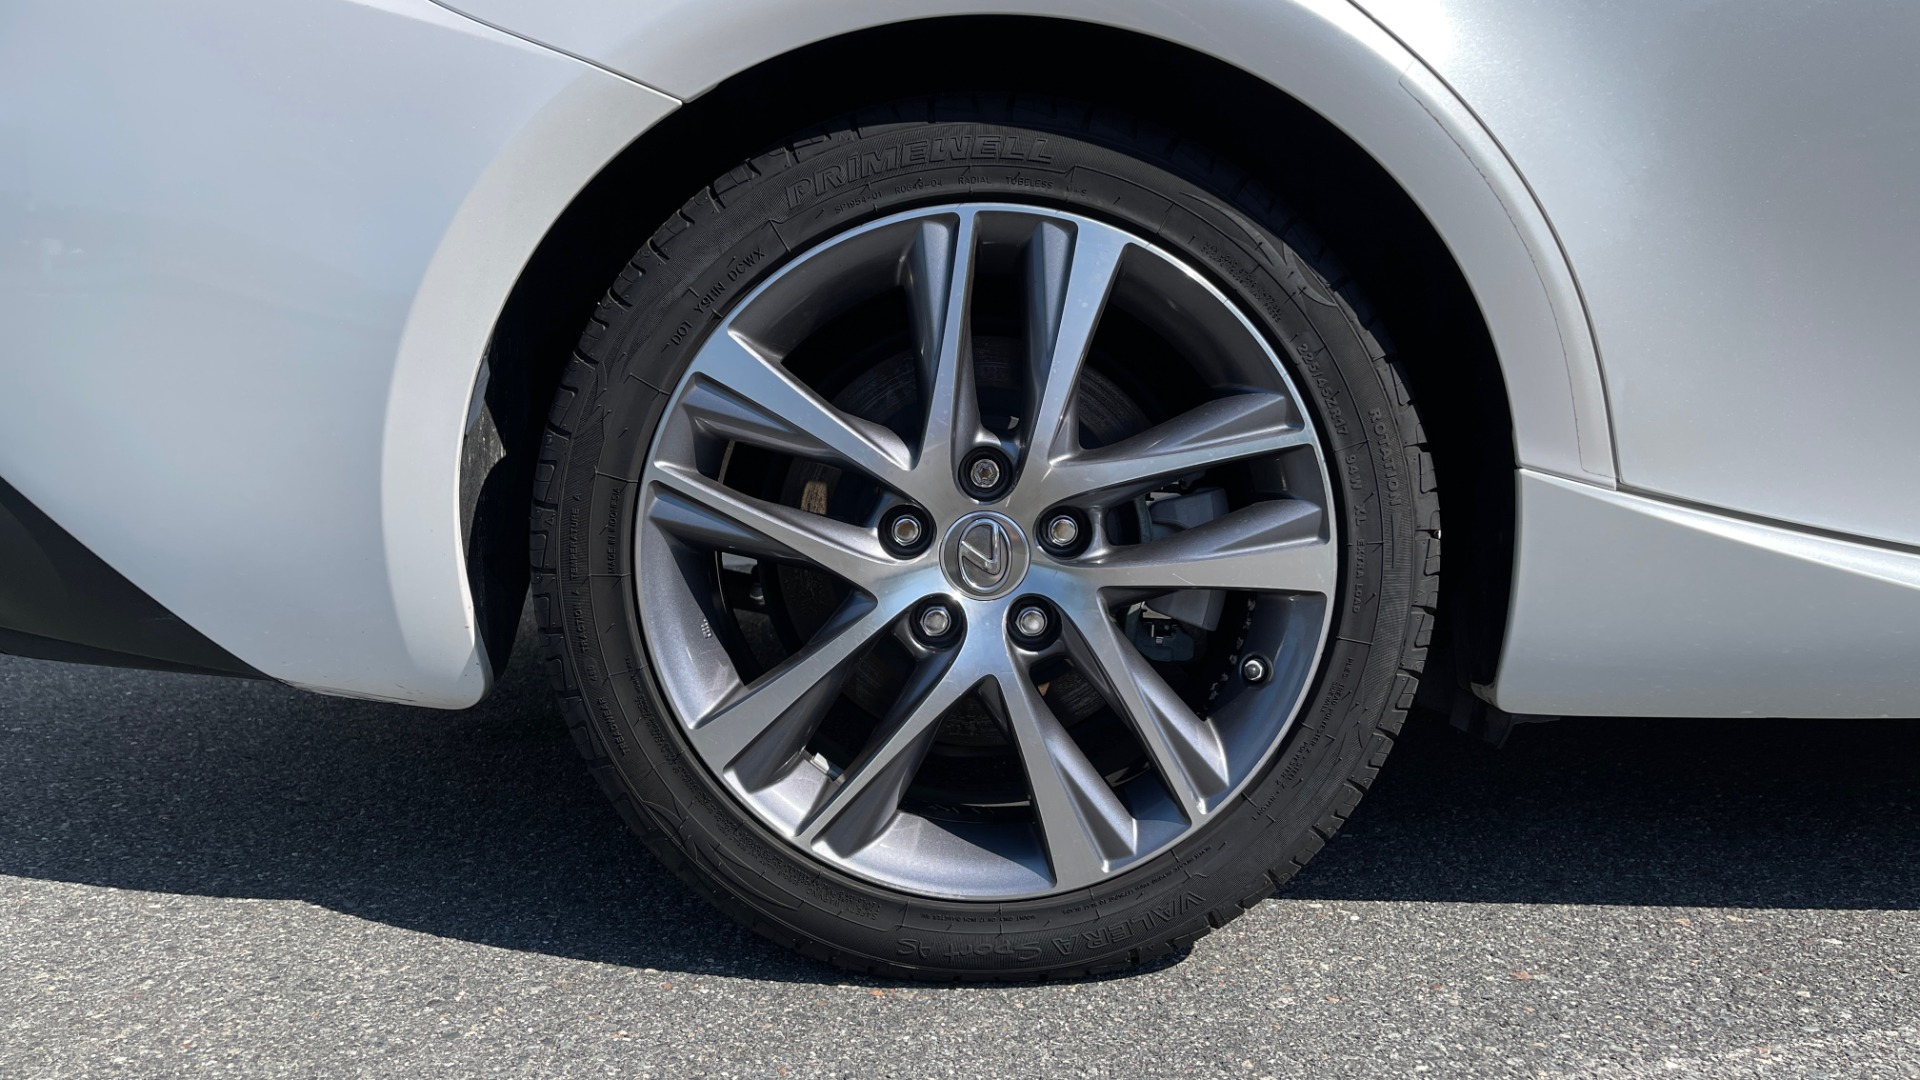 Used 2018 Lexus IS 300 / 2.0L TURBO / 8-SPD AUTO / SUNROOF / REARVIEW for sale $29,495 at Formula Imports in Charlotte NC 28227 68